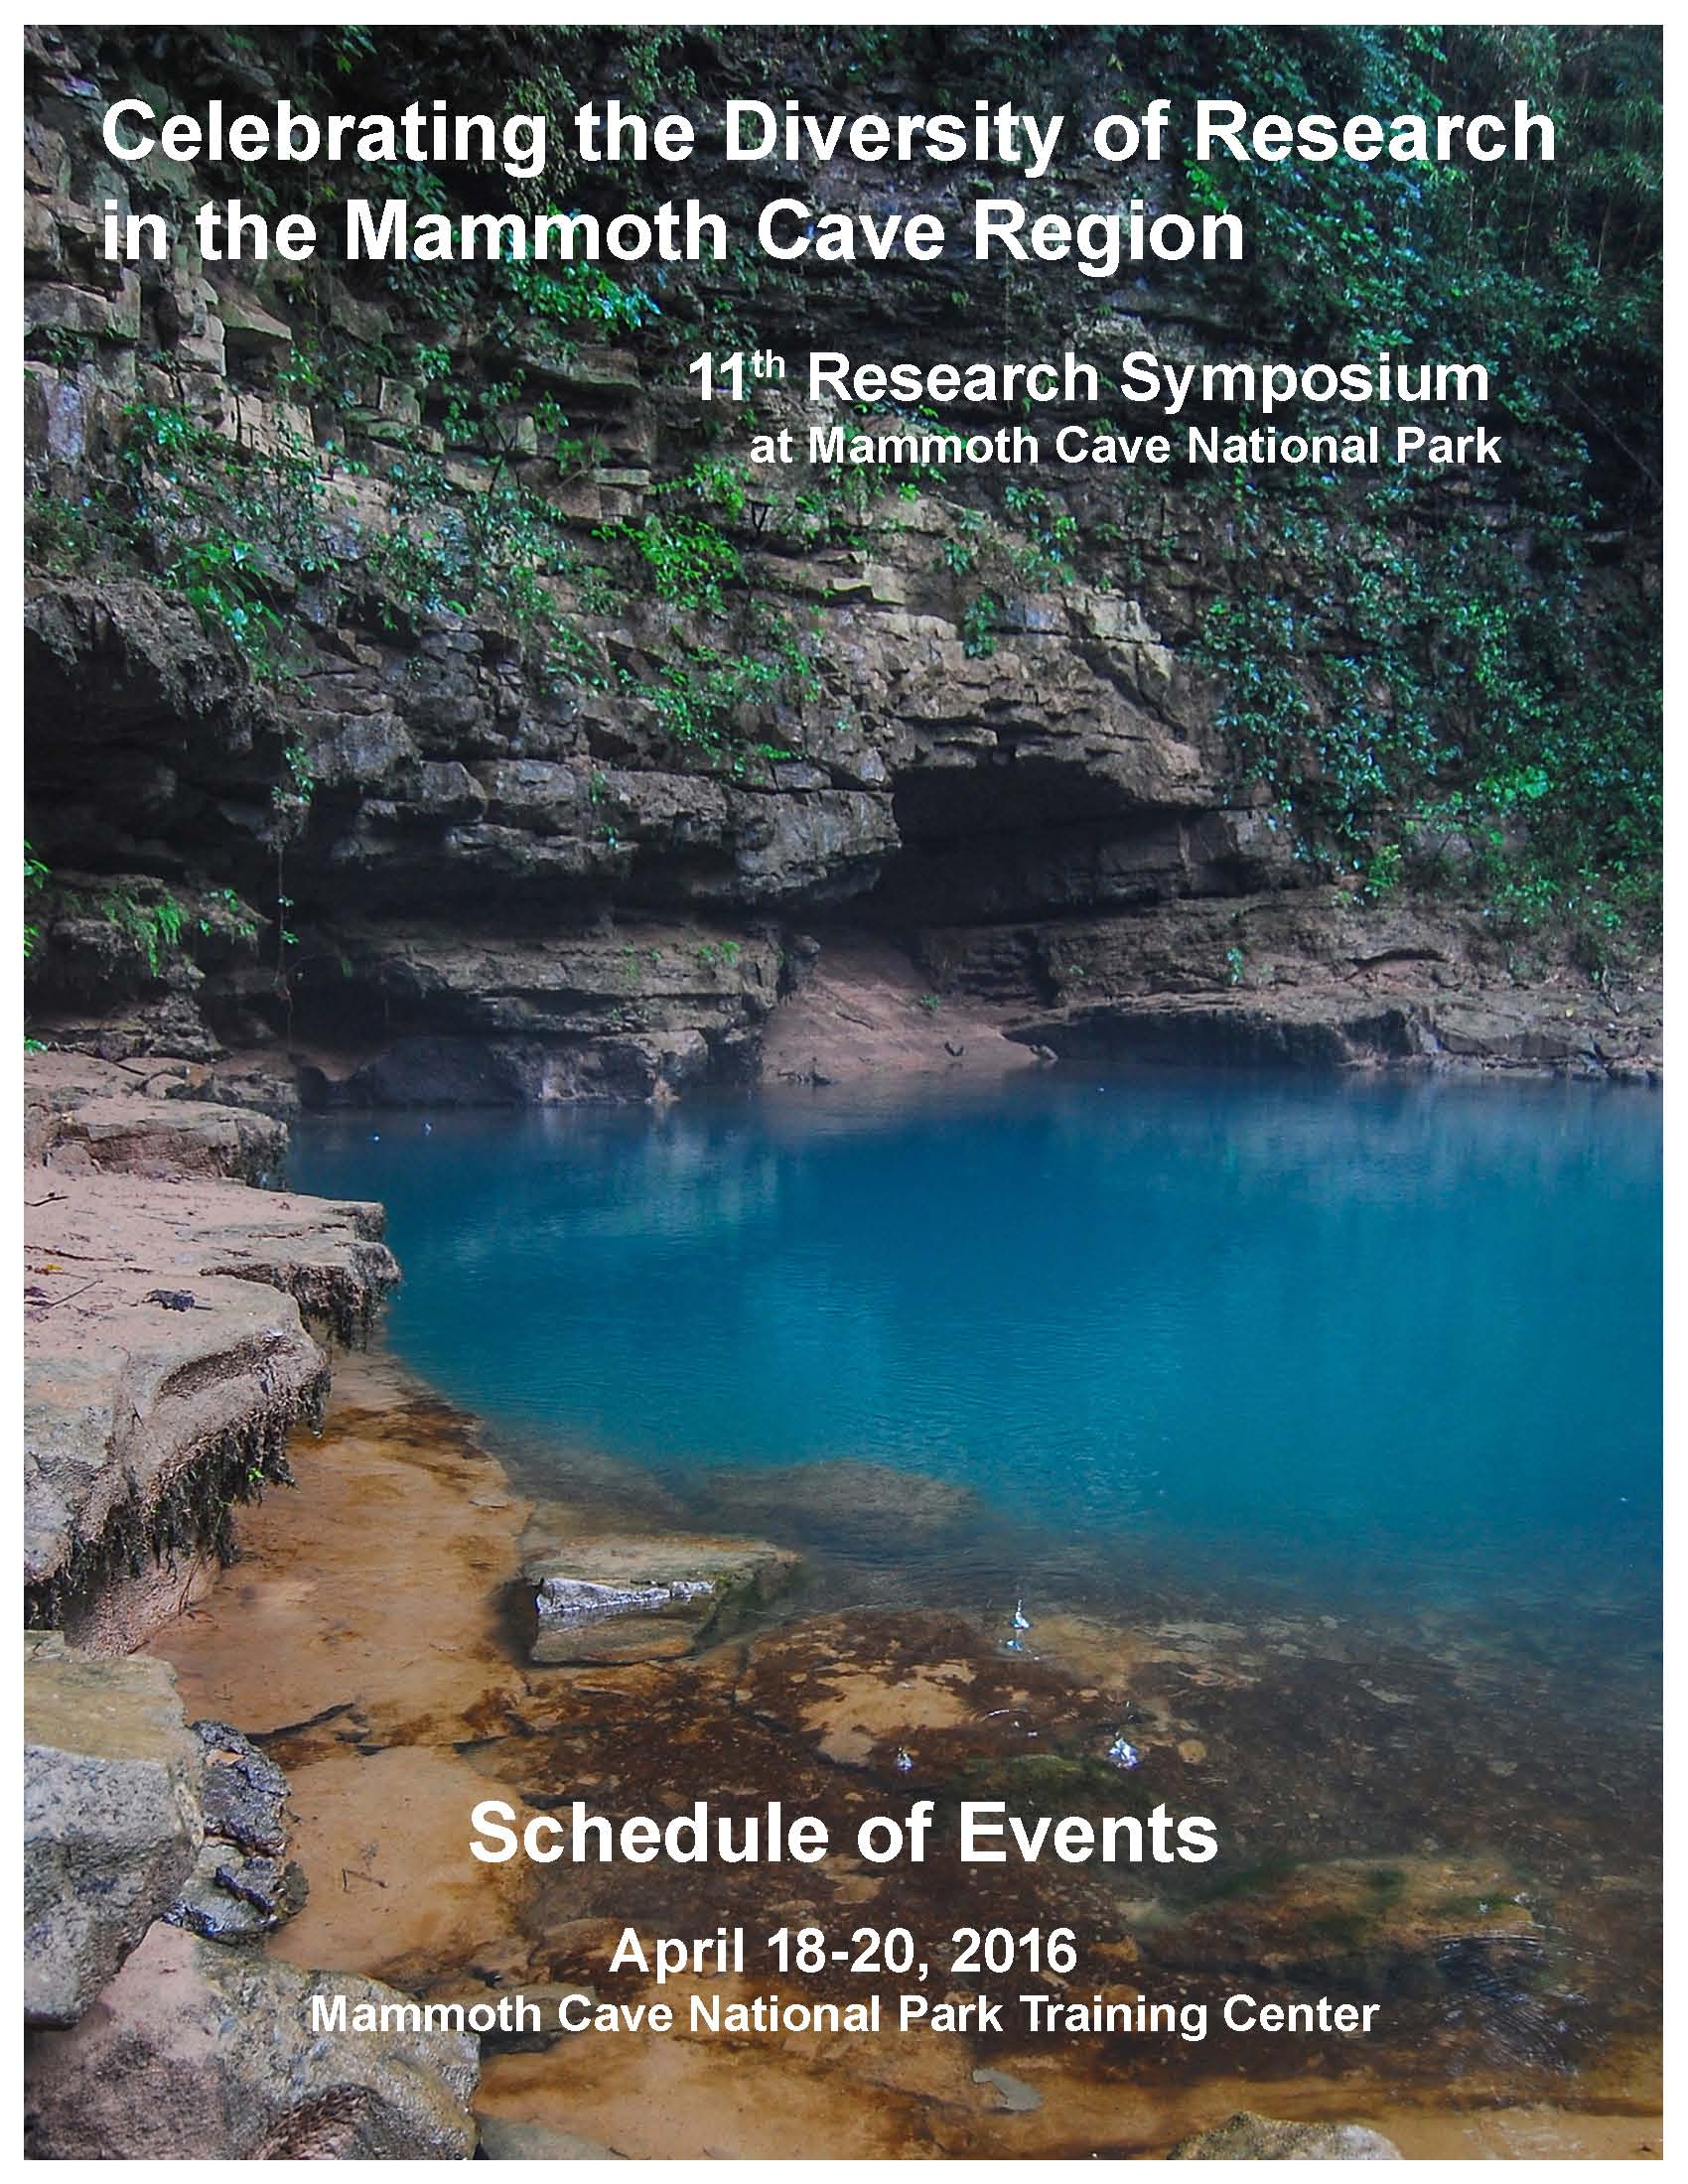 11th Research Symposium 2016